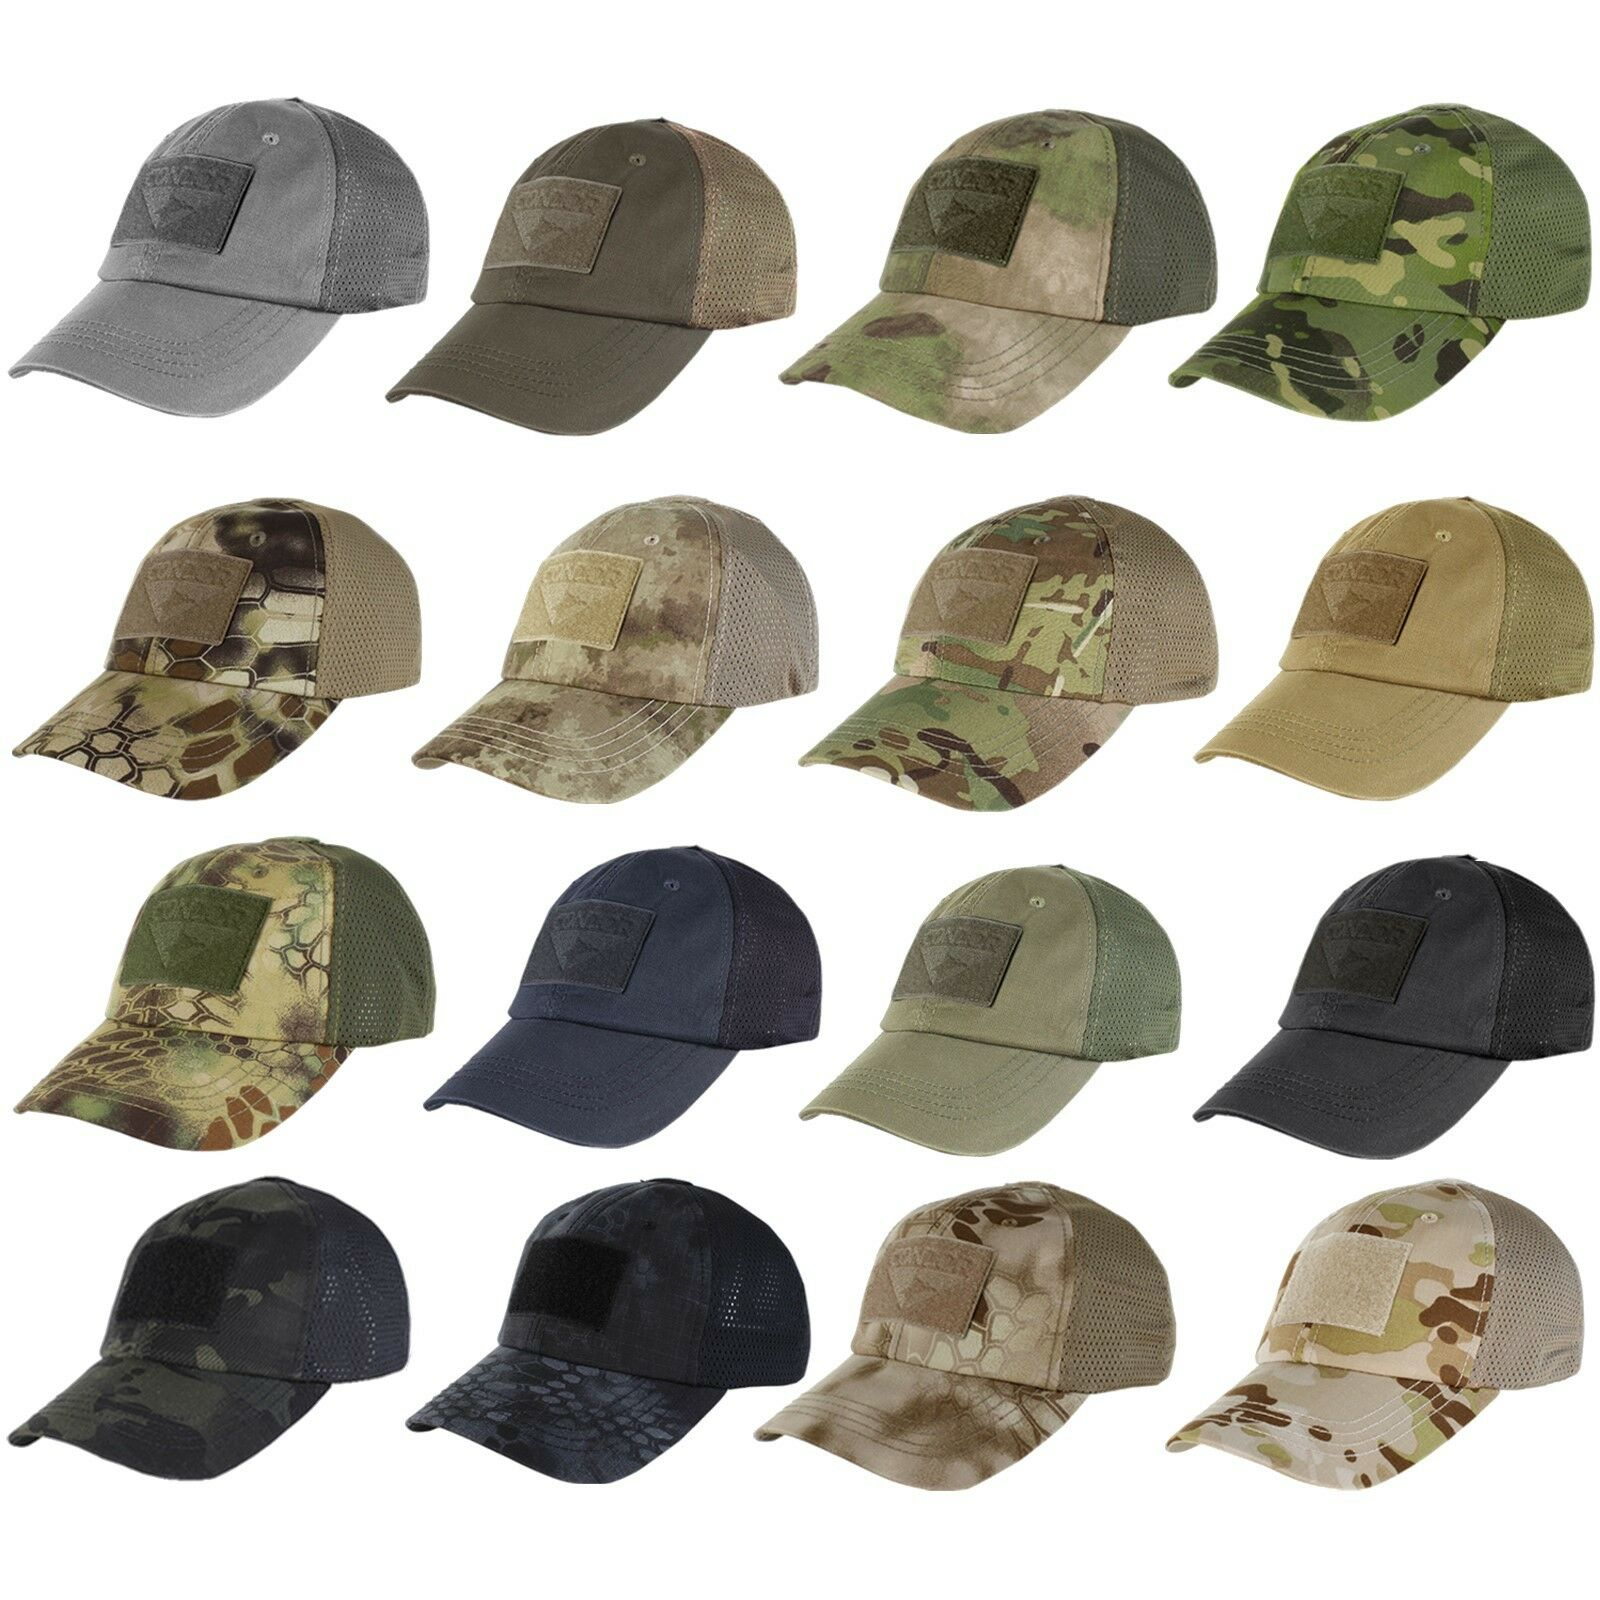 Condor Tactical Baseball Style Military Hunting Hiking Outdoor Mesh Cap Hat  TCM f3a0889a56d